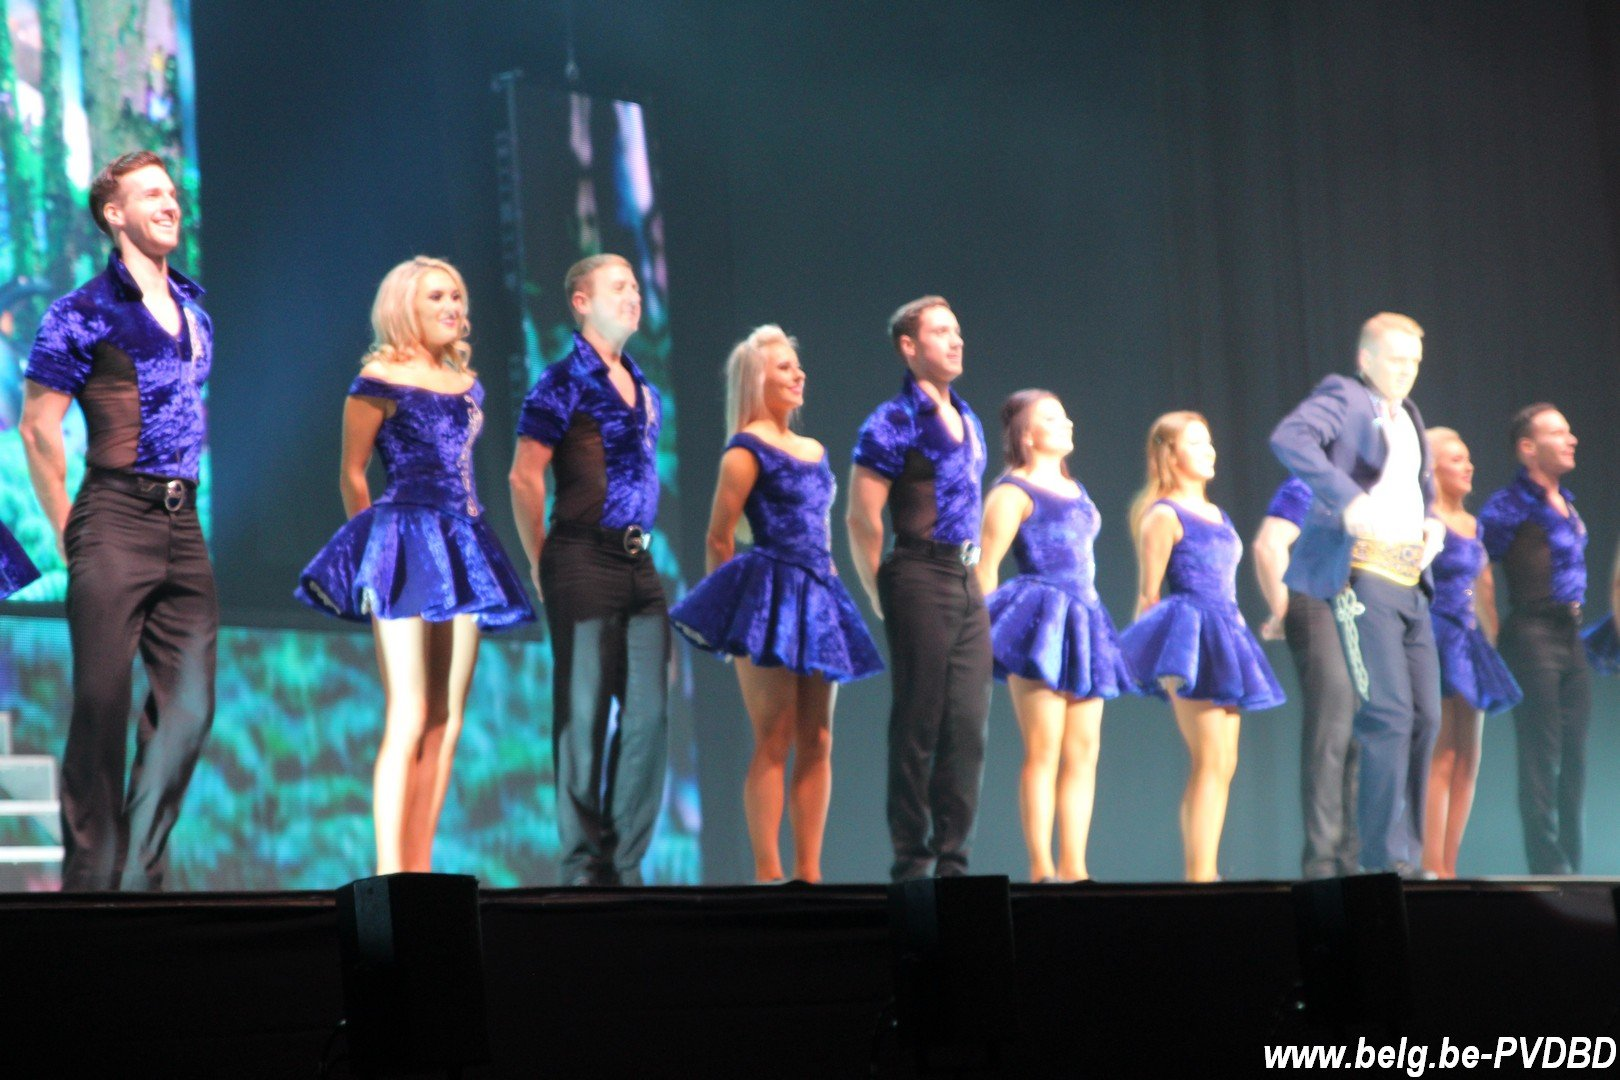 Lord Of The Dance te gast in Antwerpse Lotto-Arena - IMG 4331